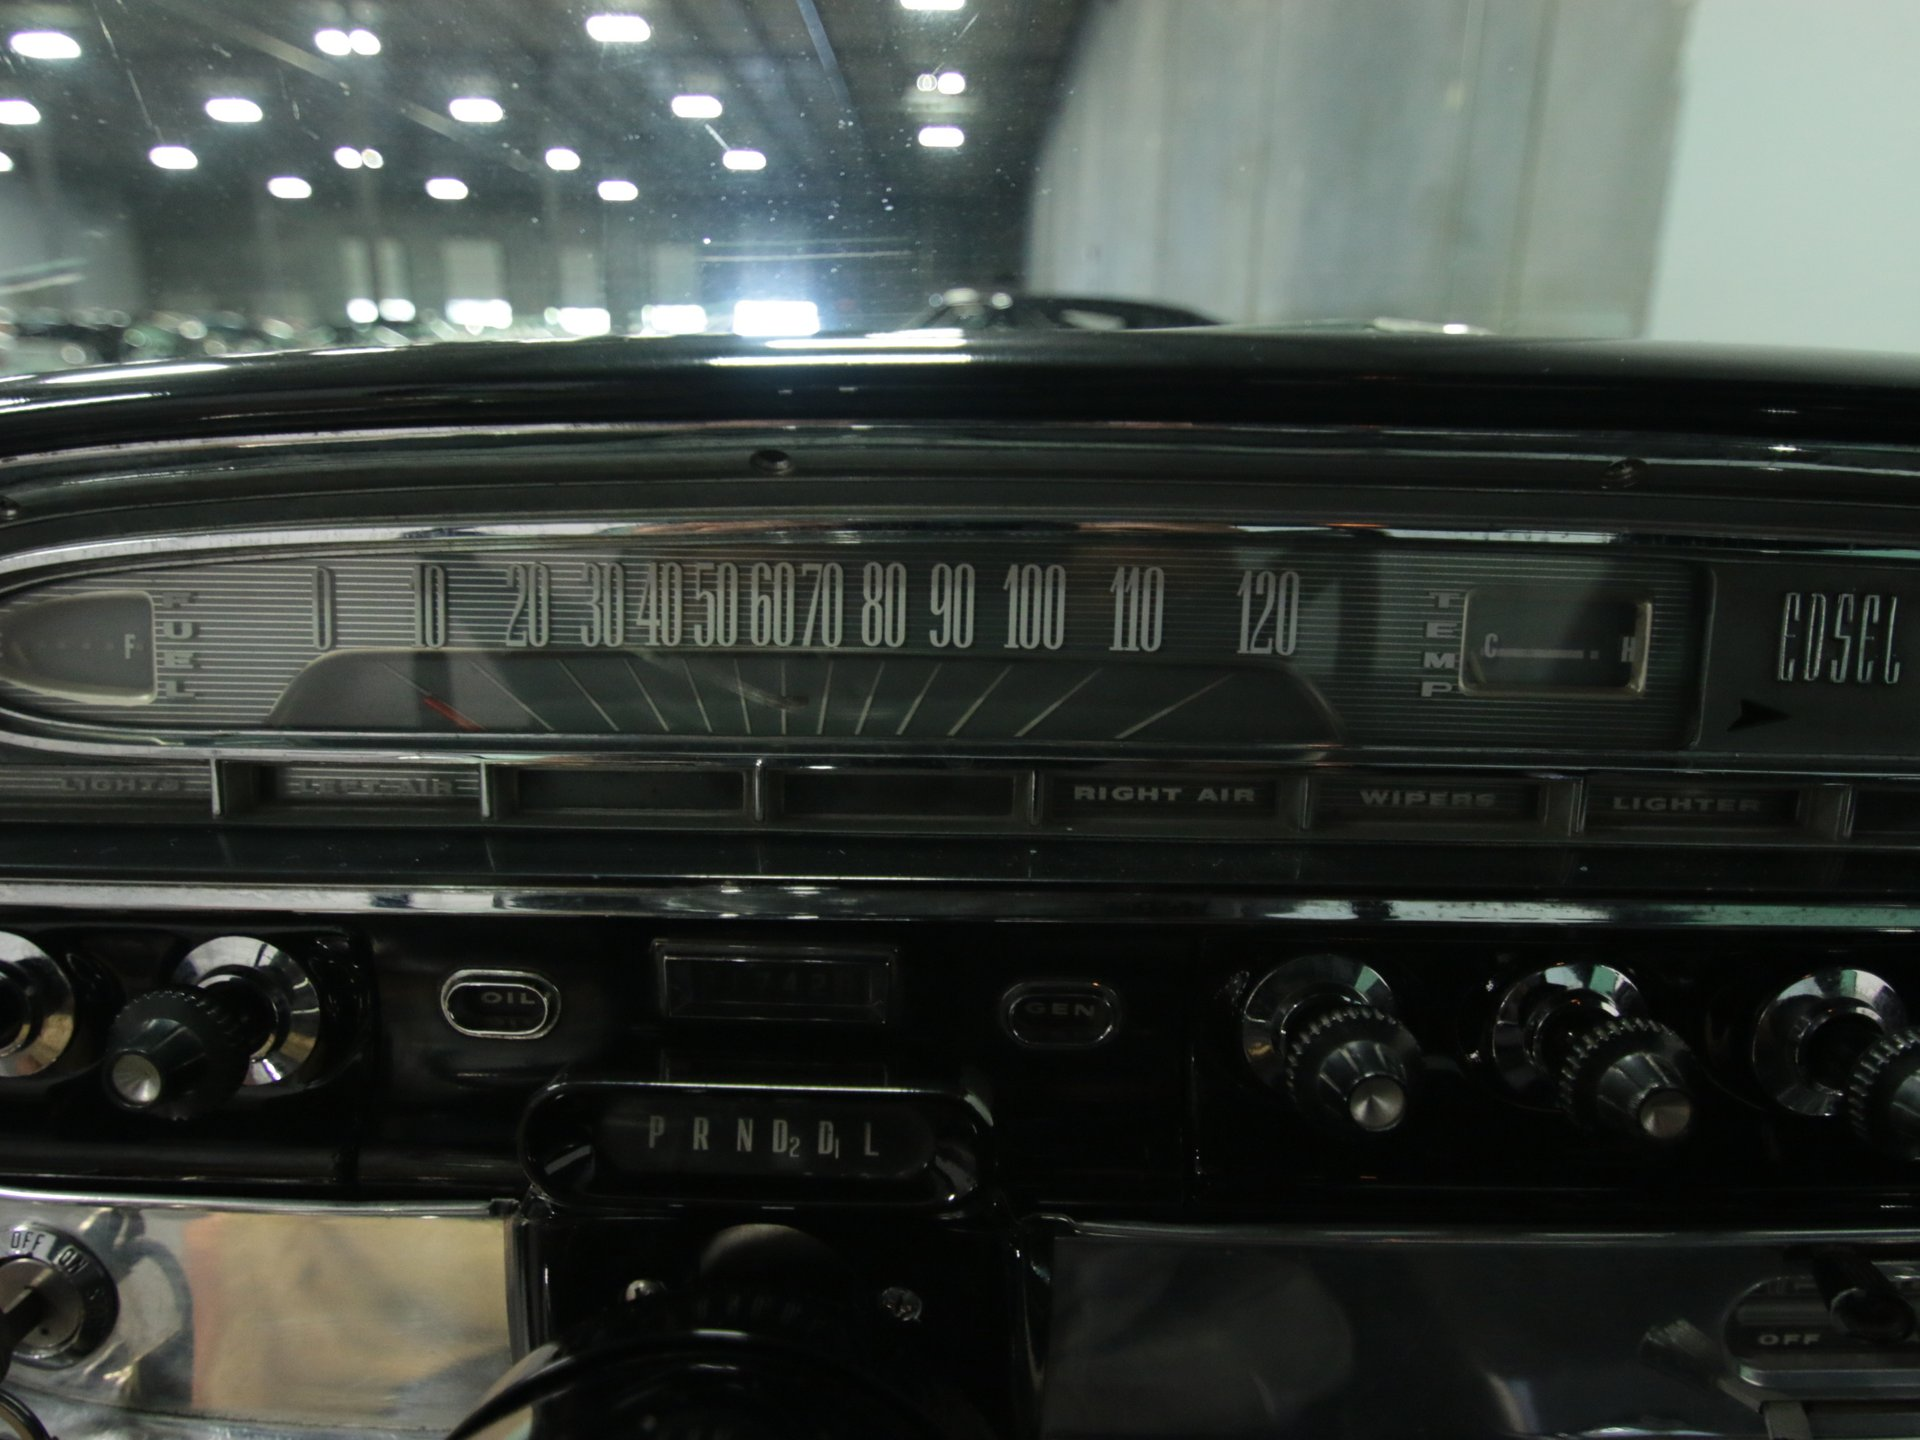 1960 Edsel Ranger Streetside Classics The Nations Trusted 1941 Ford Panel Truck View 360